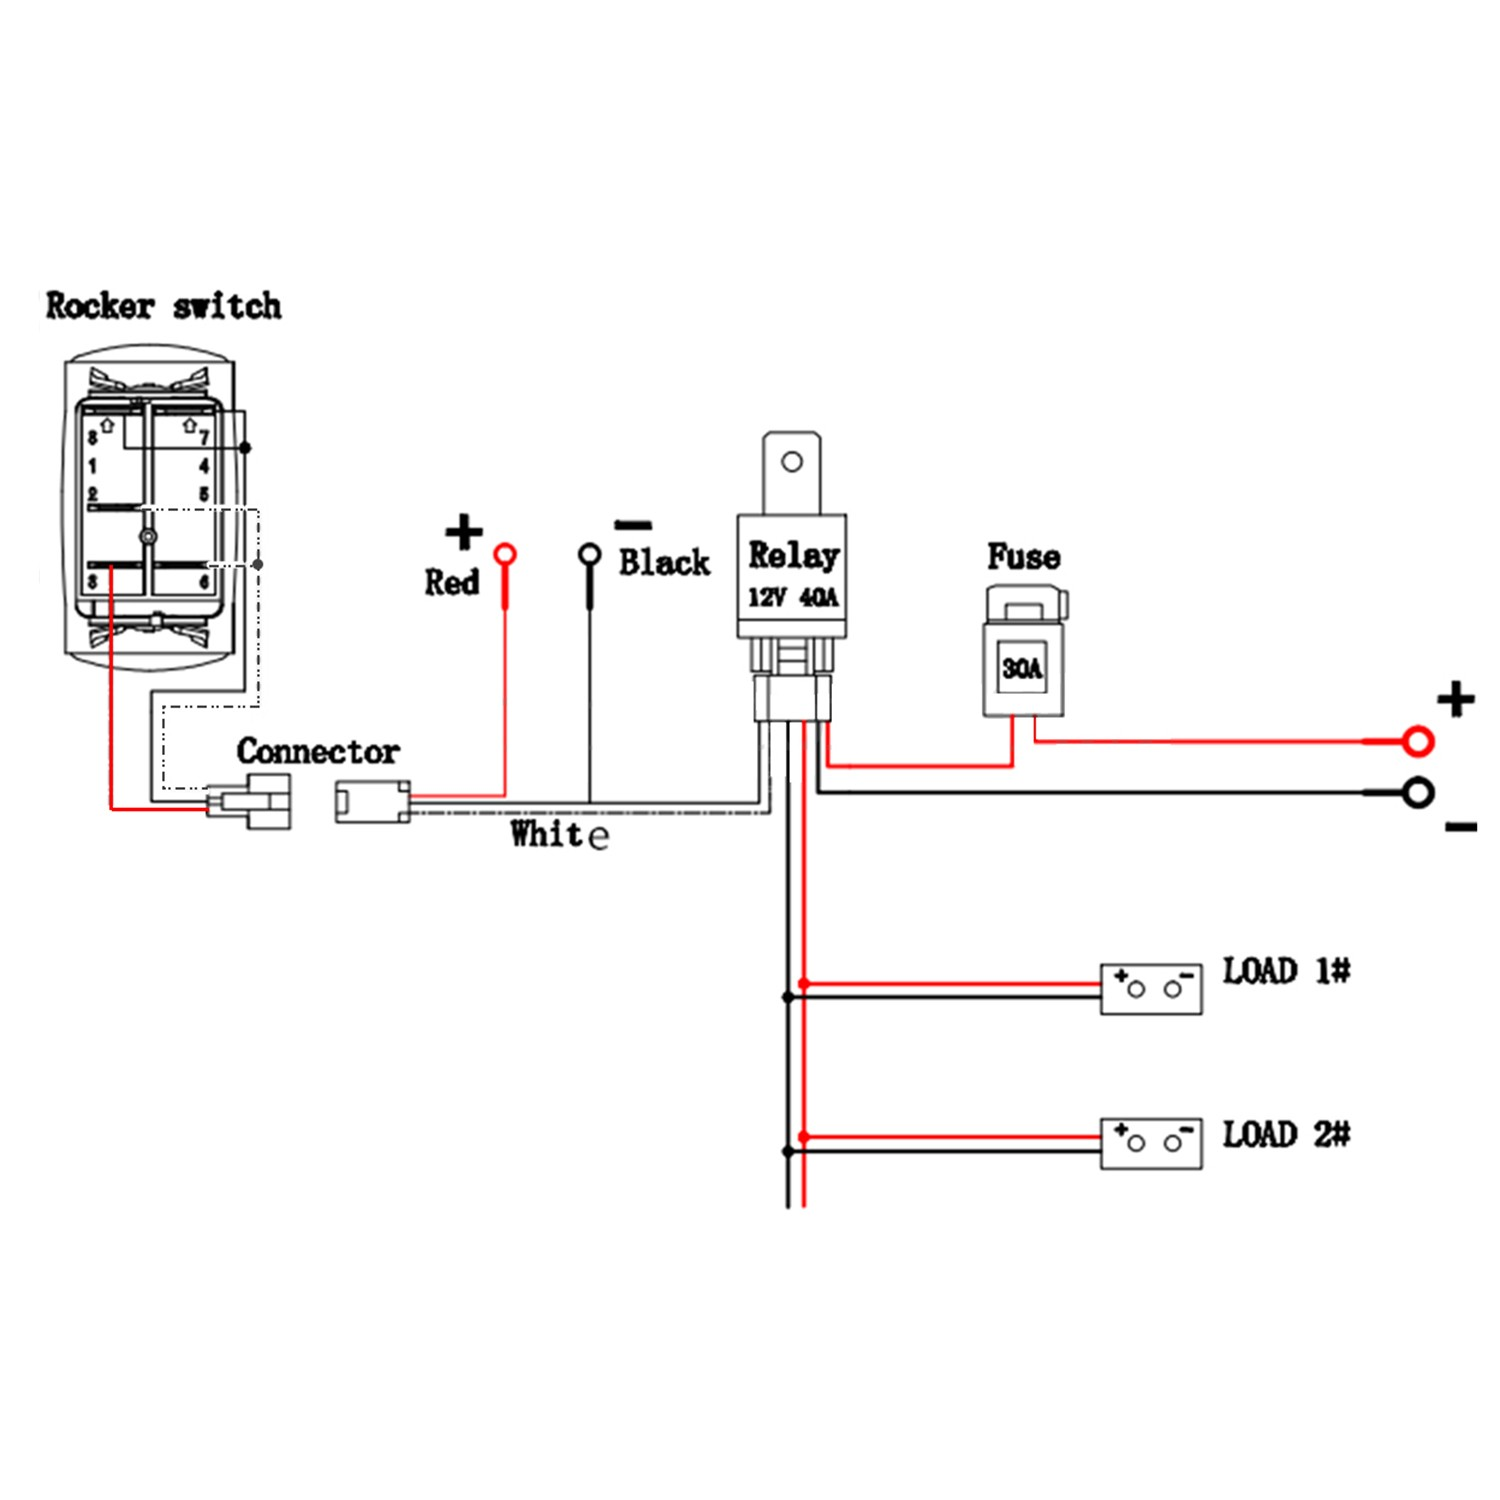 Simple light switch wiring diagram unique wiring diagram image power to multiple lights then switch end line switch wiring diagram switch loop multiple lights switch cheapraybanclubmaster Image collections